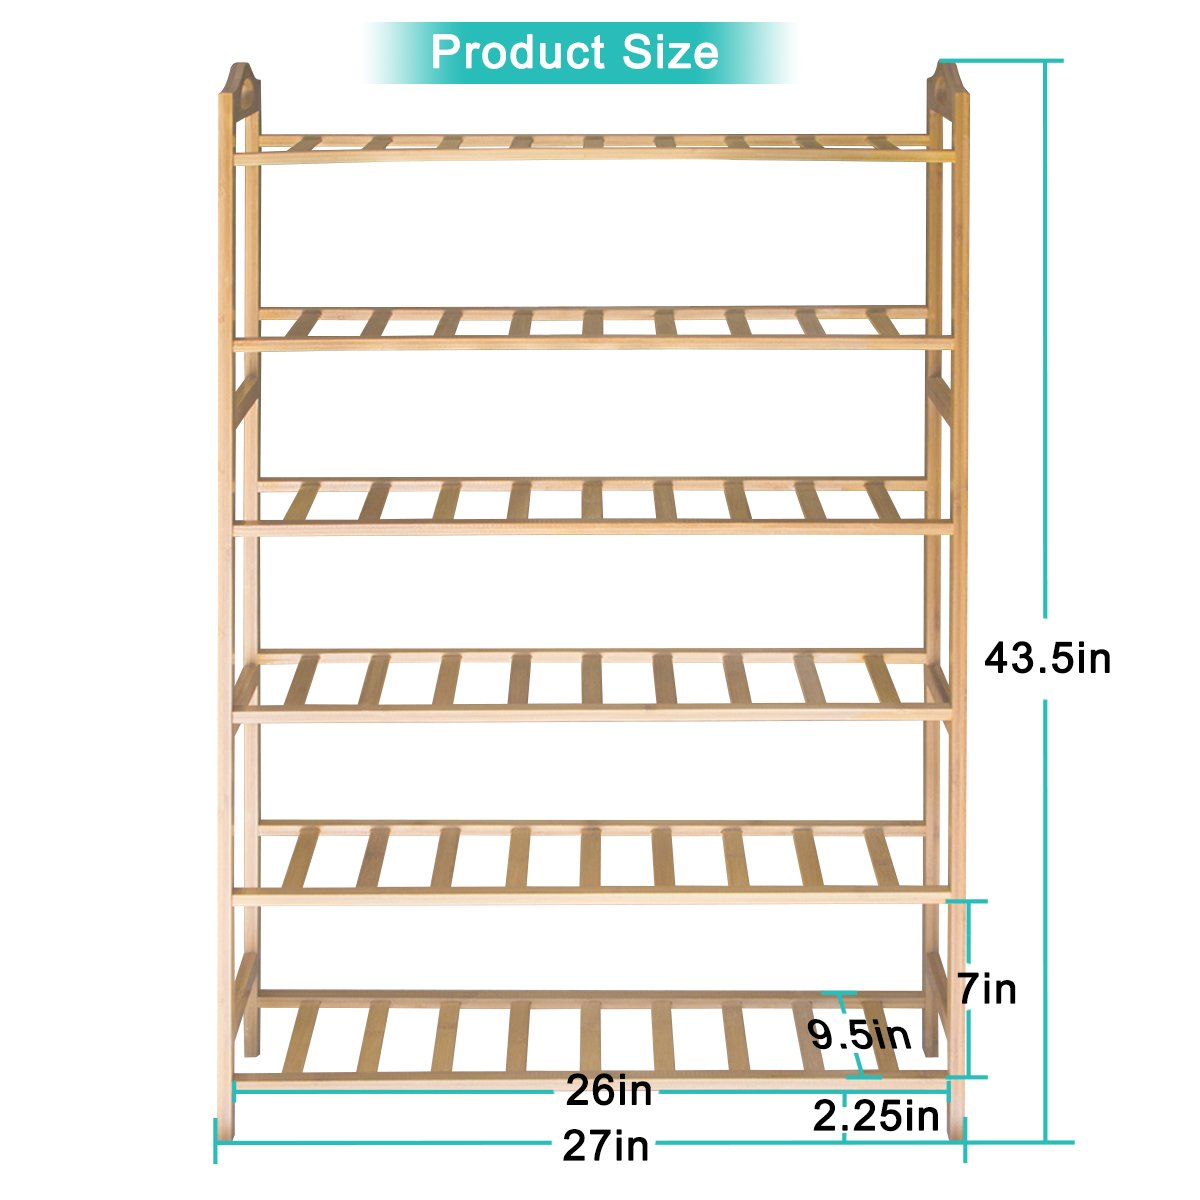 ANKO Bamboo Shoe Rack, 100% Natural Bamboo Thickened 6-Tier Mesh Utility Entryway Shoe Shelf Storage Organizer Suitable for Entryway, Closet, Living Room, Bedroom. (1 PACK) by ANKO (Image #3)